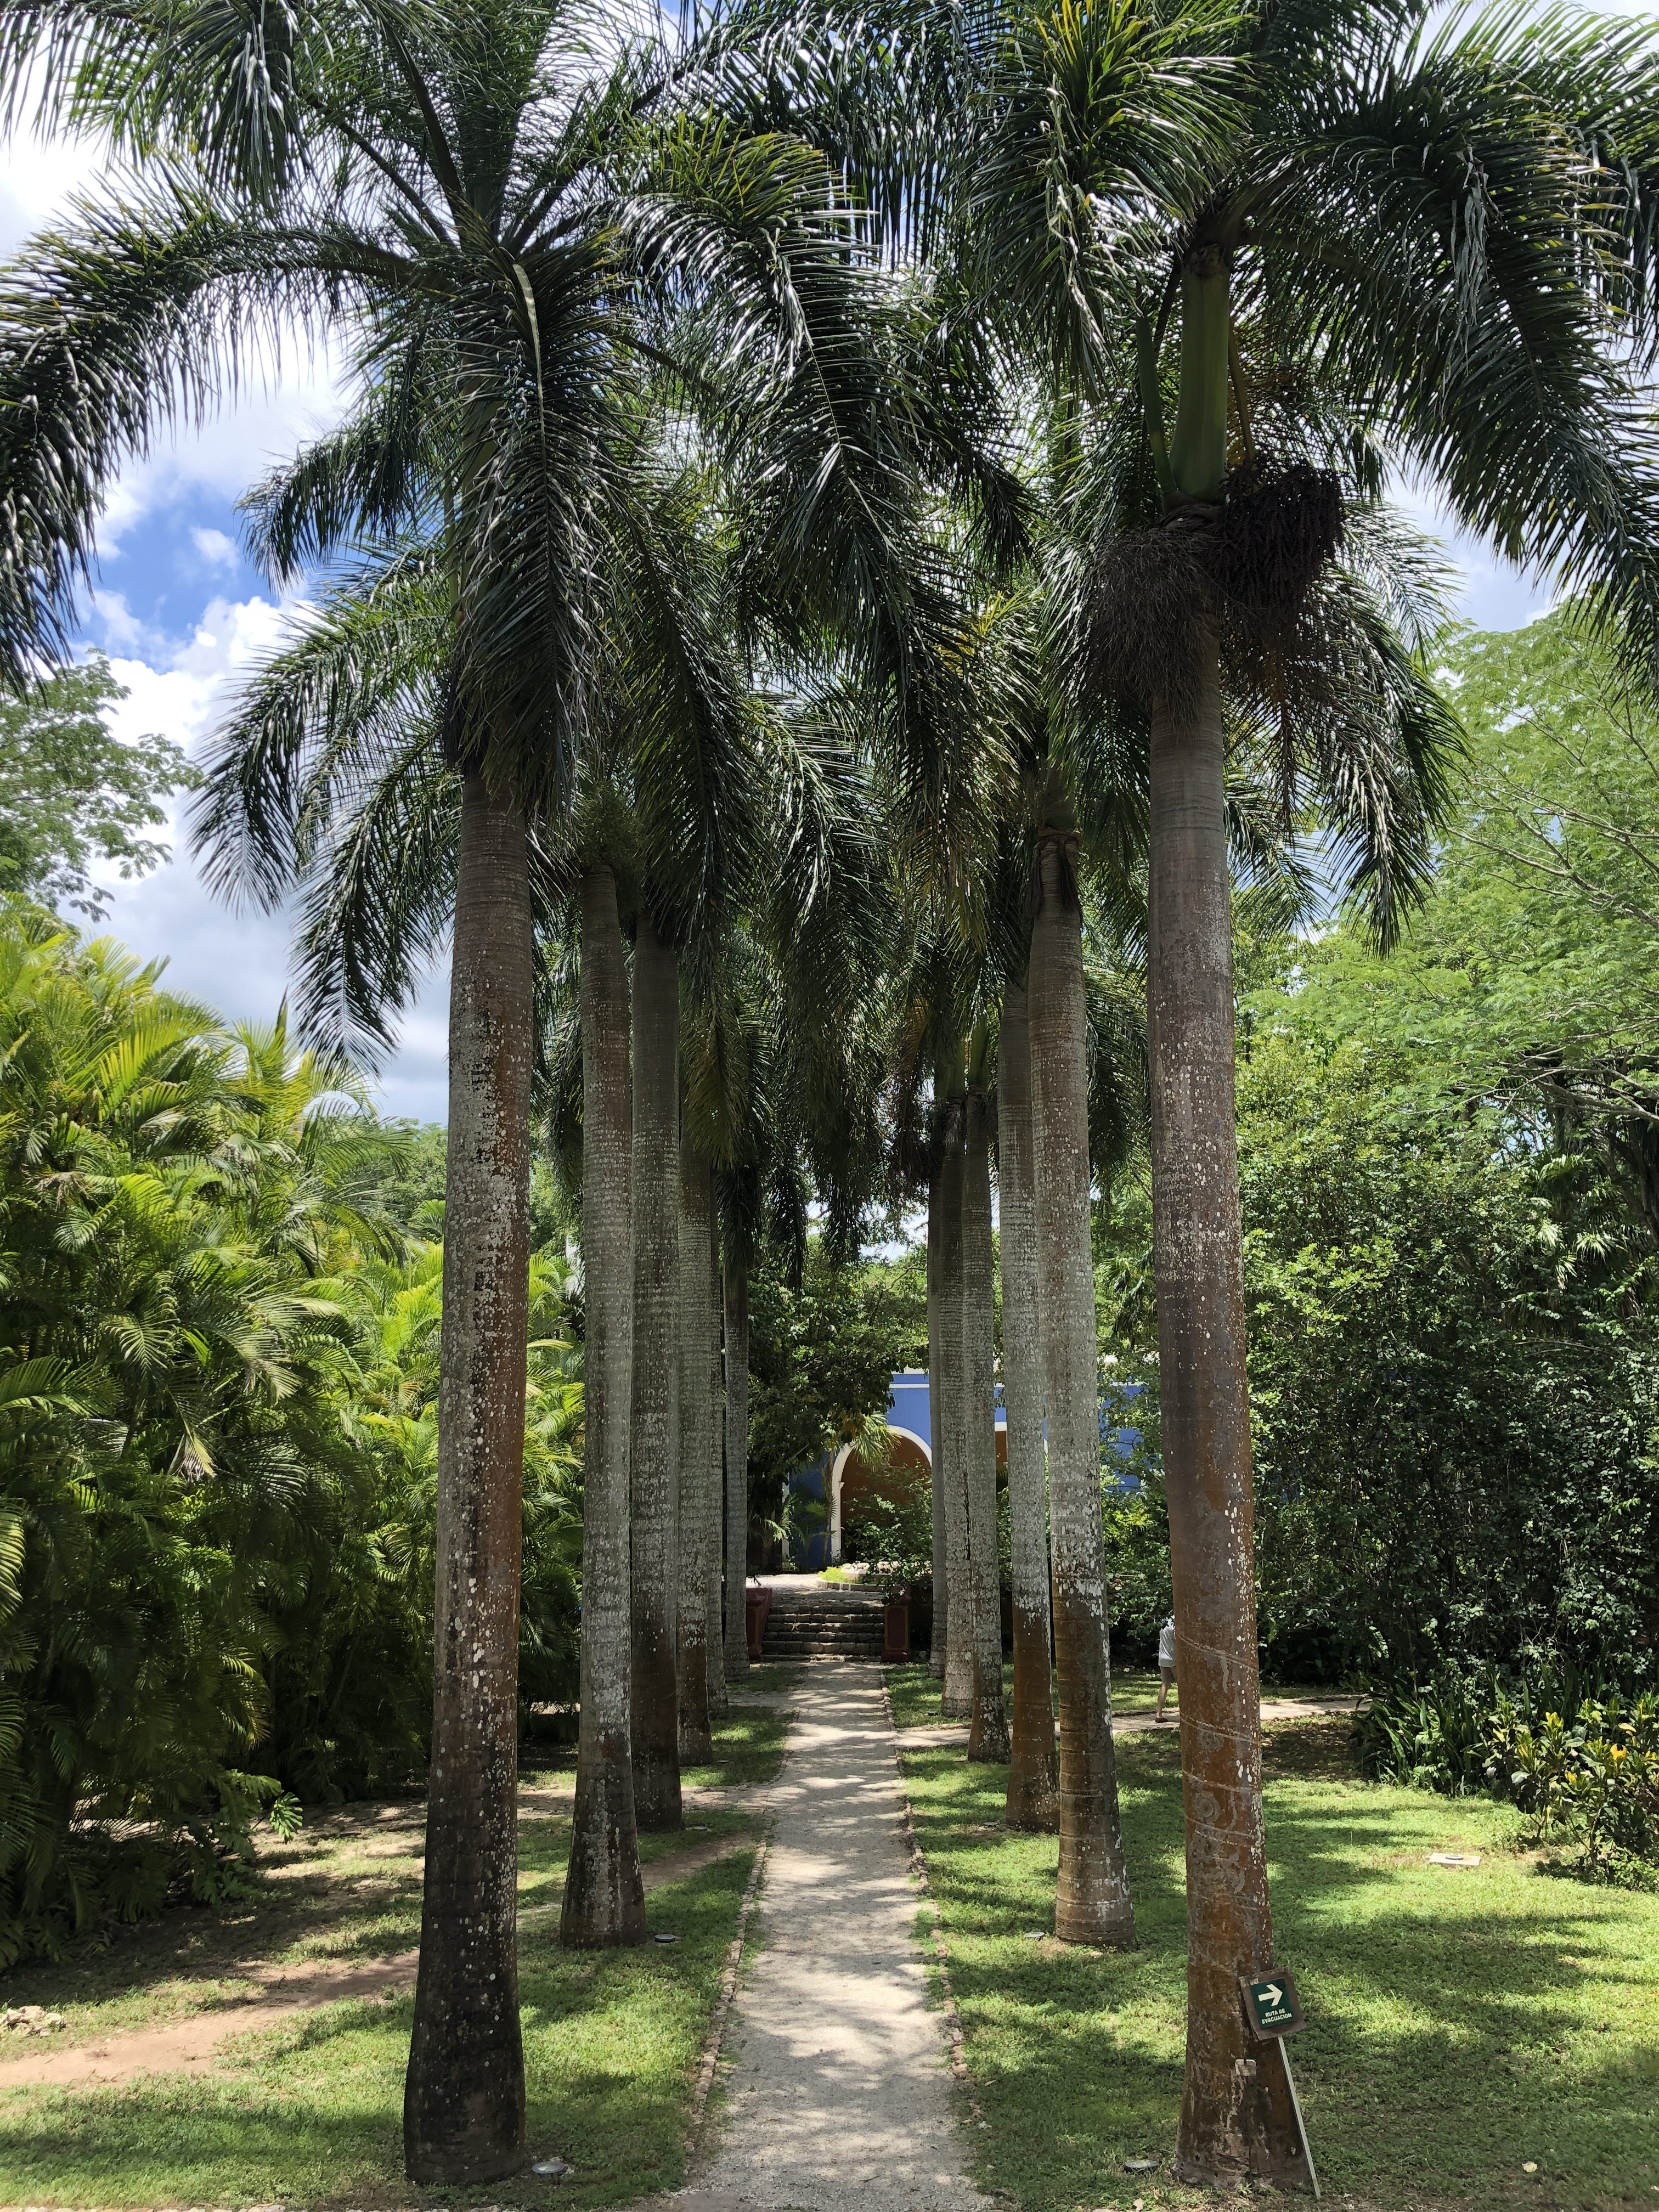 Stephanie Hill from The Style Bungalow featuring Life As I Know It August Hacienda San Jose, Merida